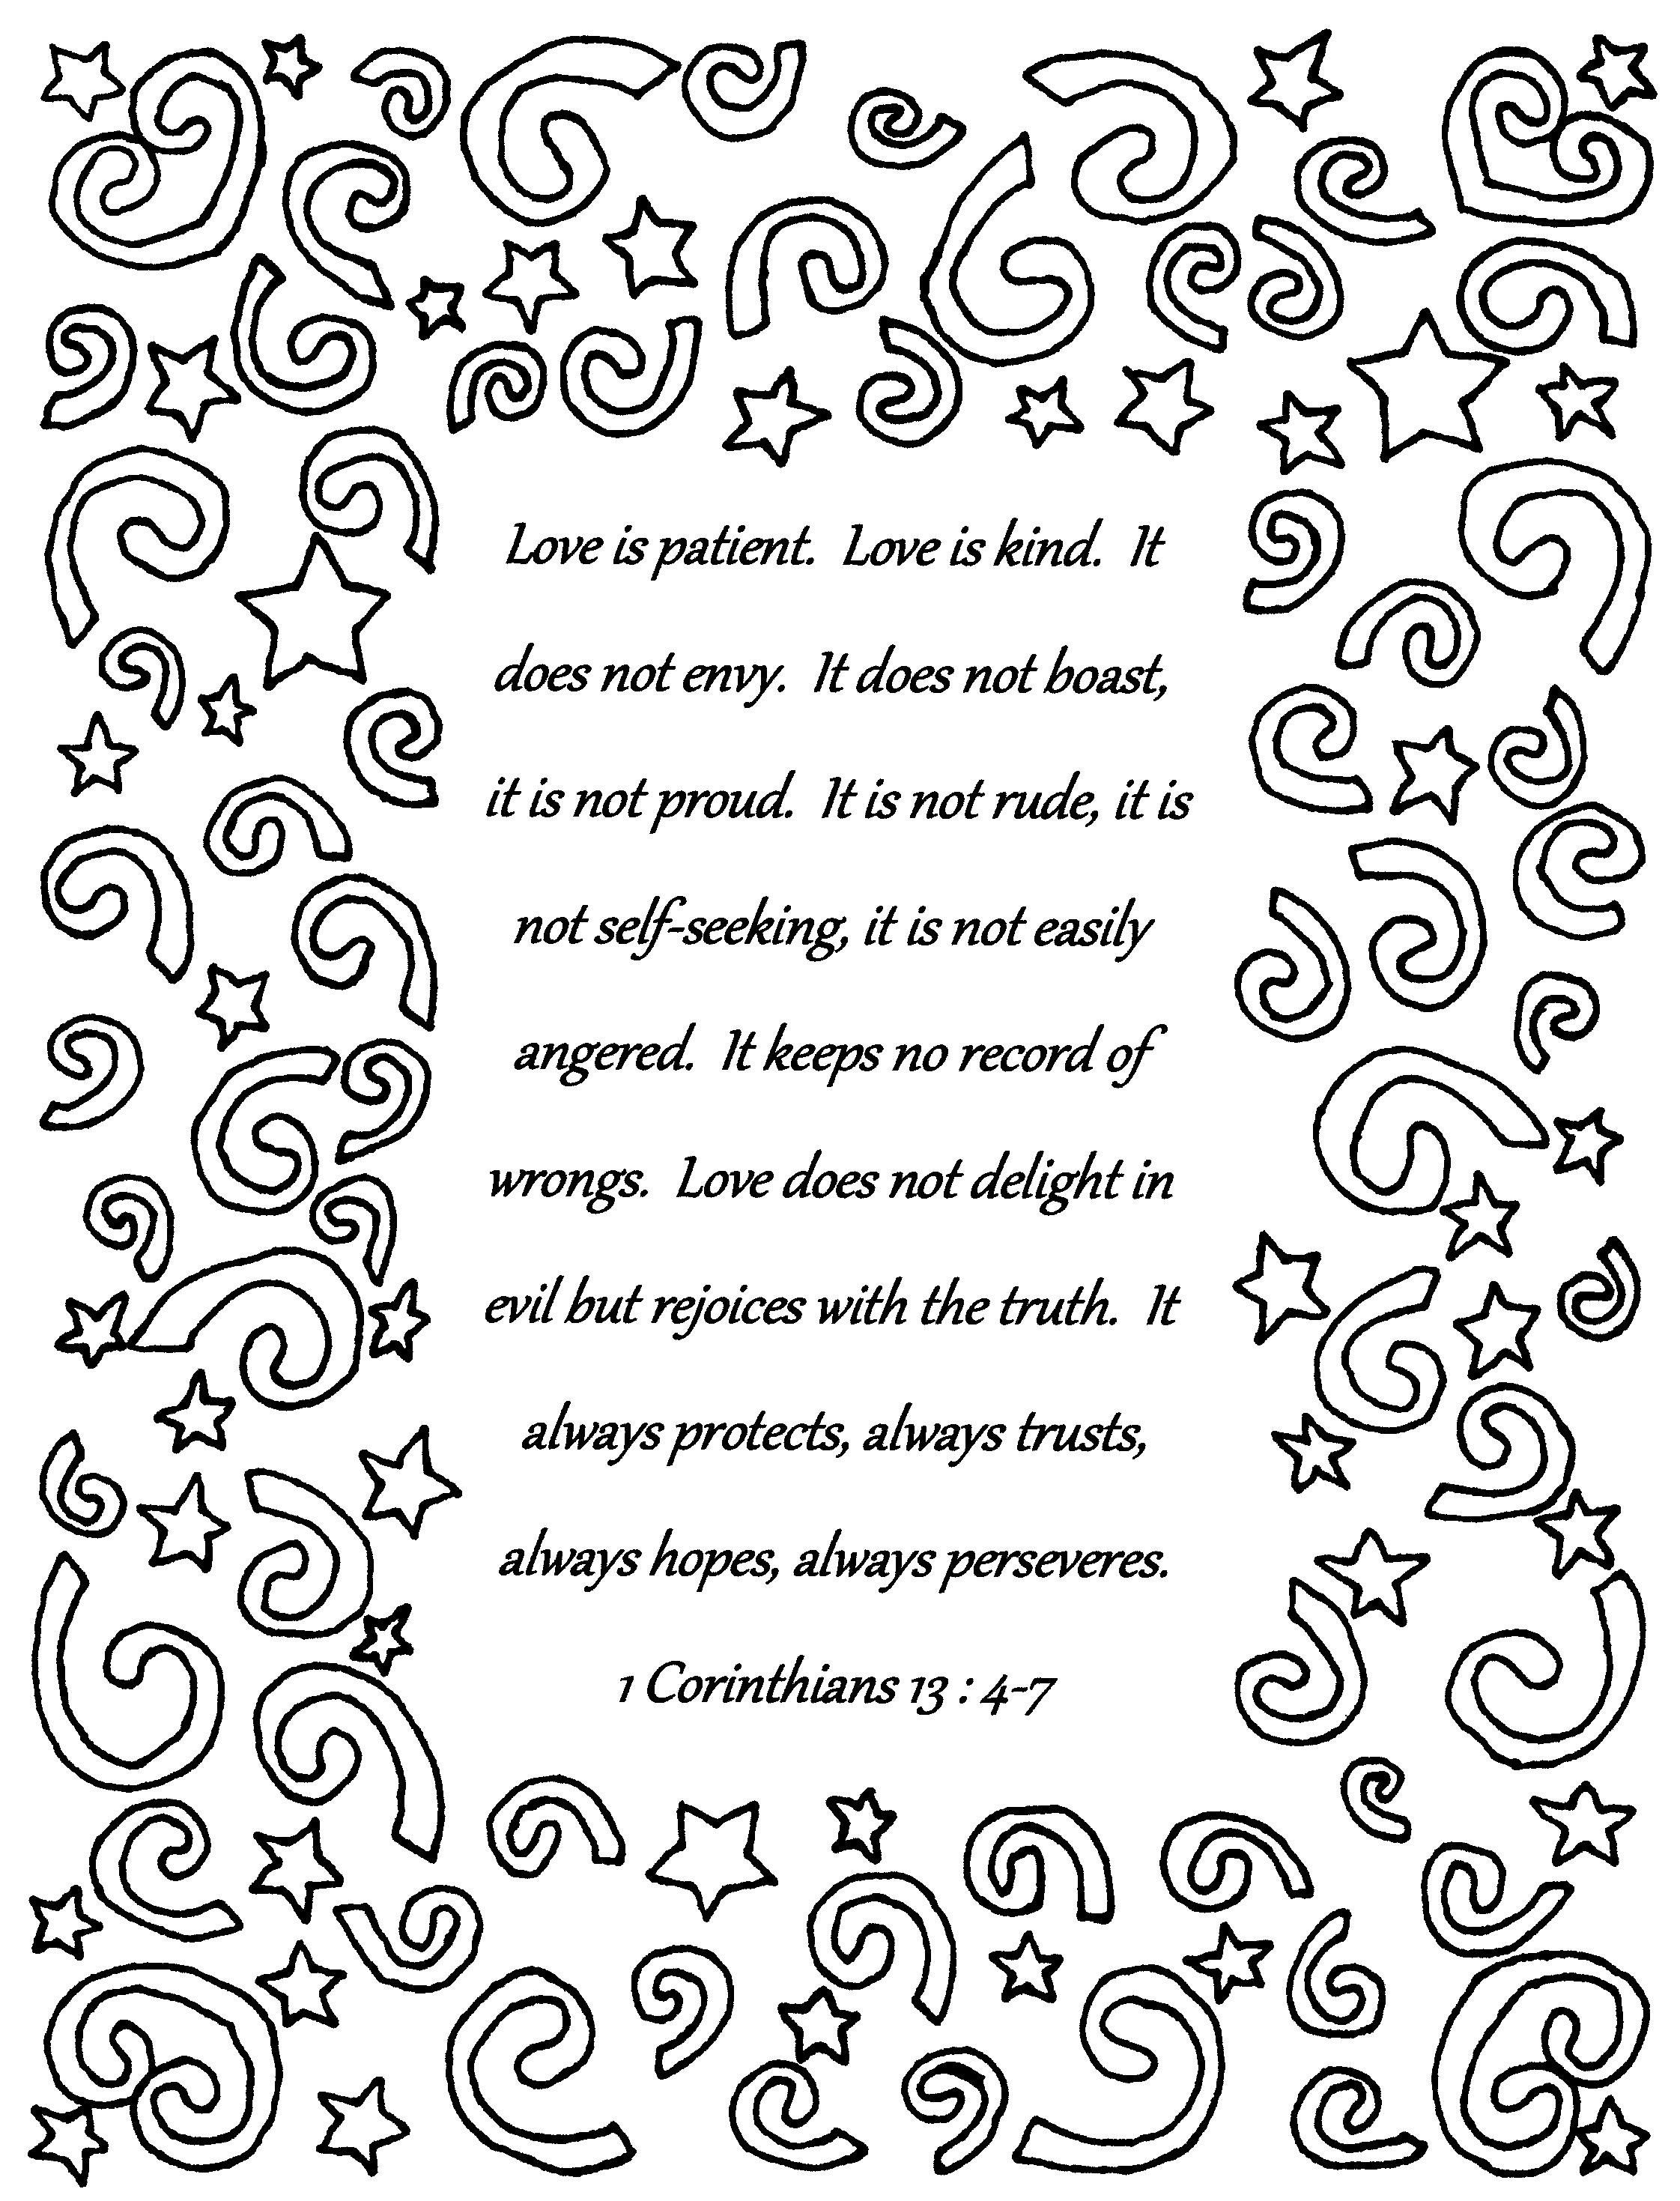 1 Corinthians 13 Coloring Pages